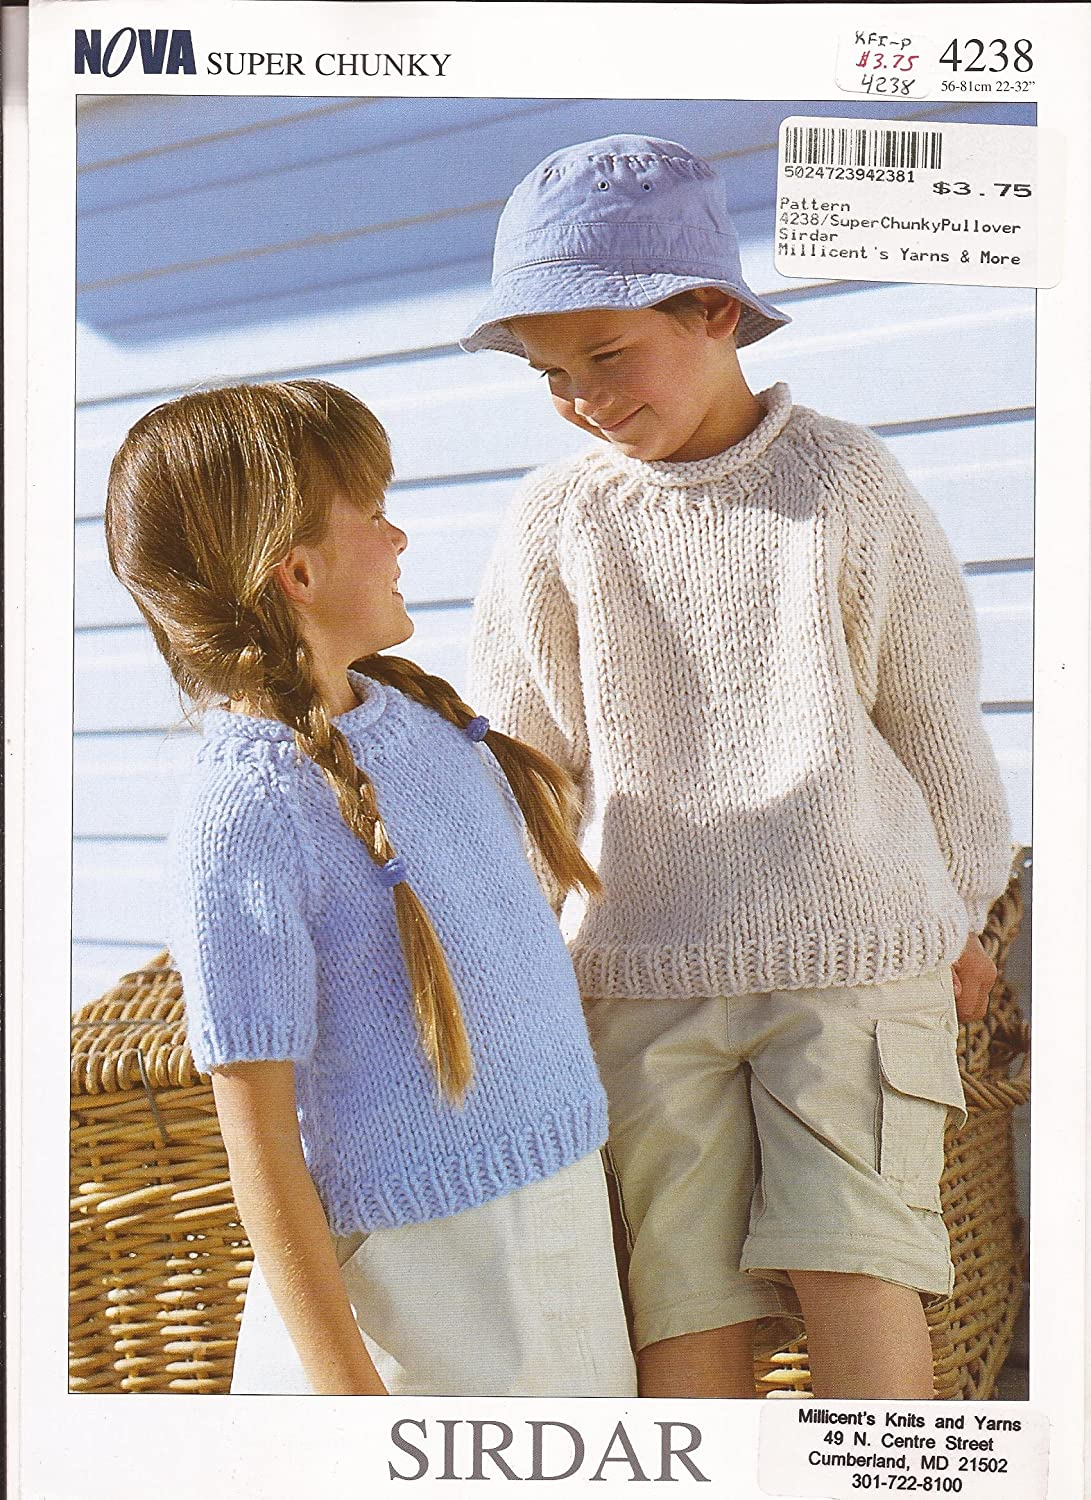 Sirdar Knitting Pattern 4238 - Nova Super Chunky Sweaters for Children 1 - 12 yrs